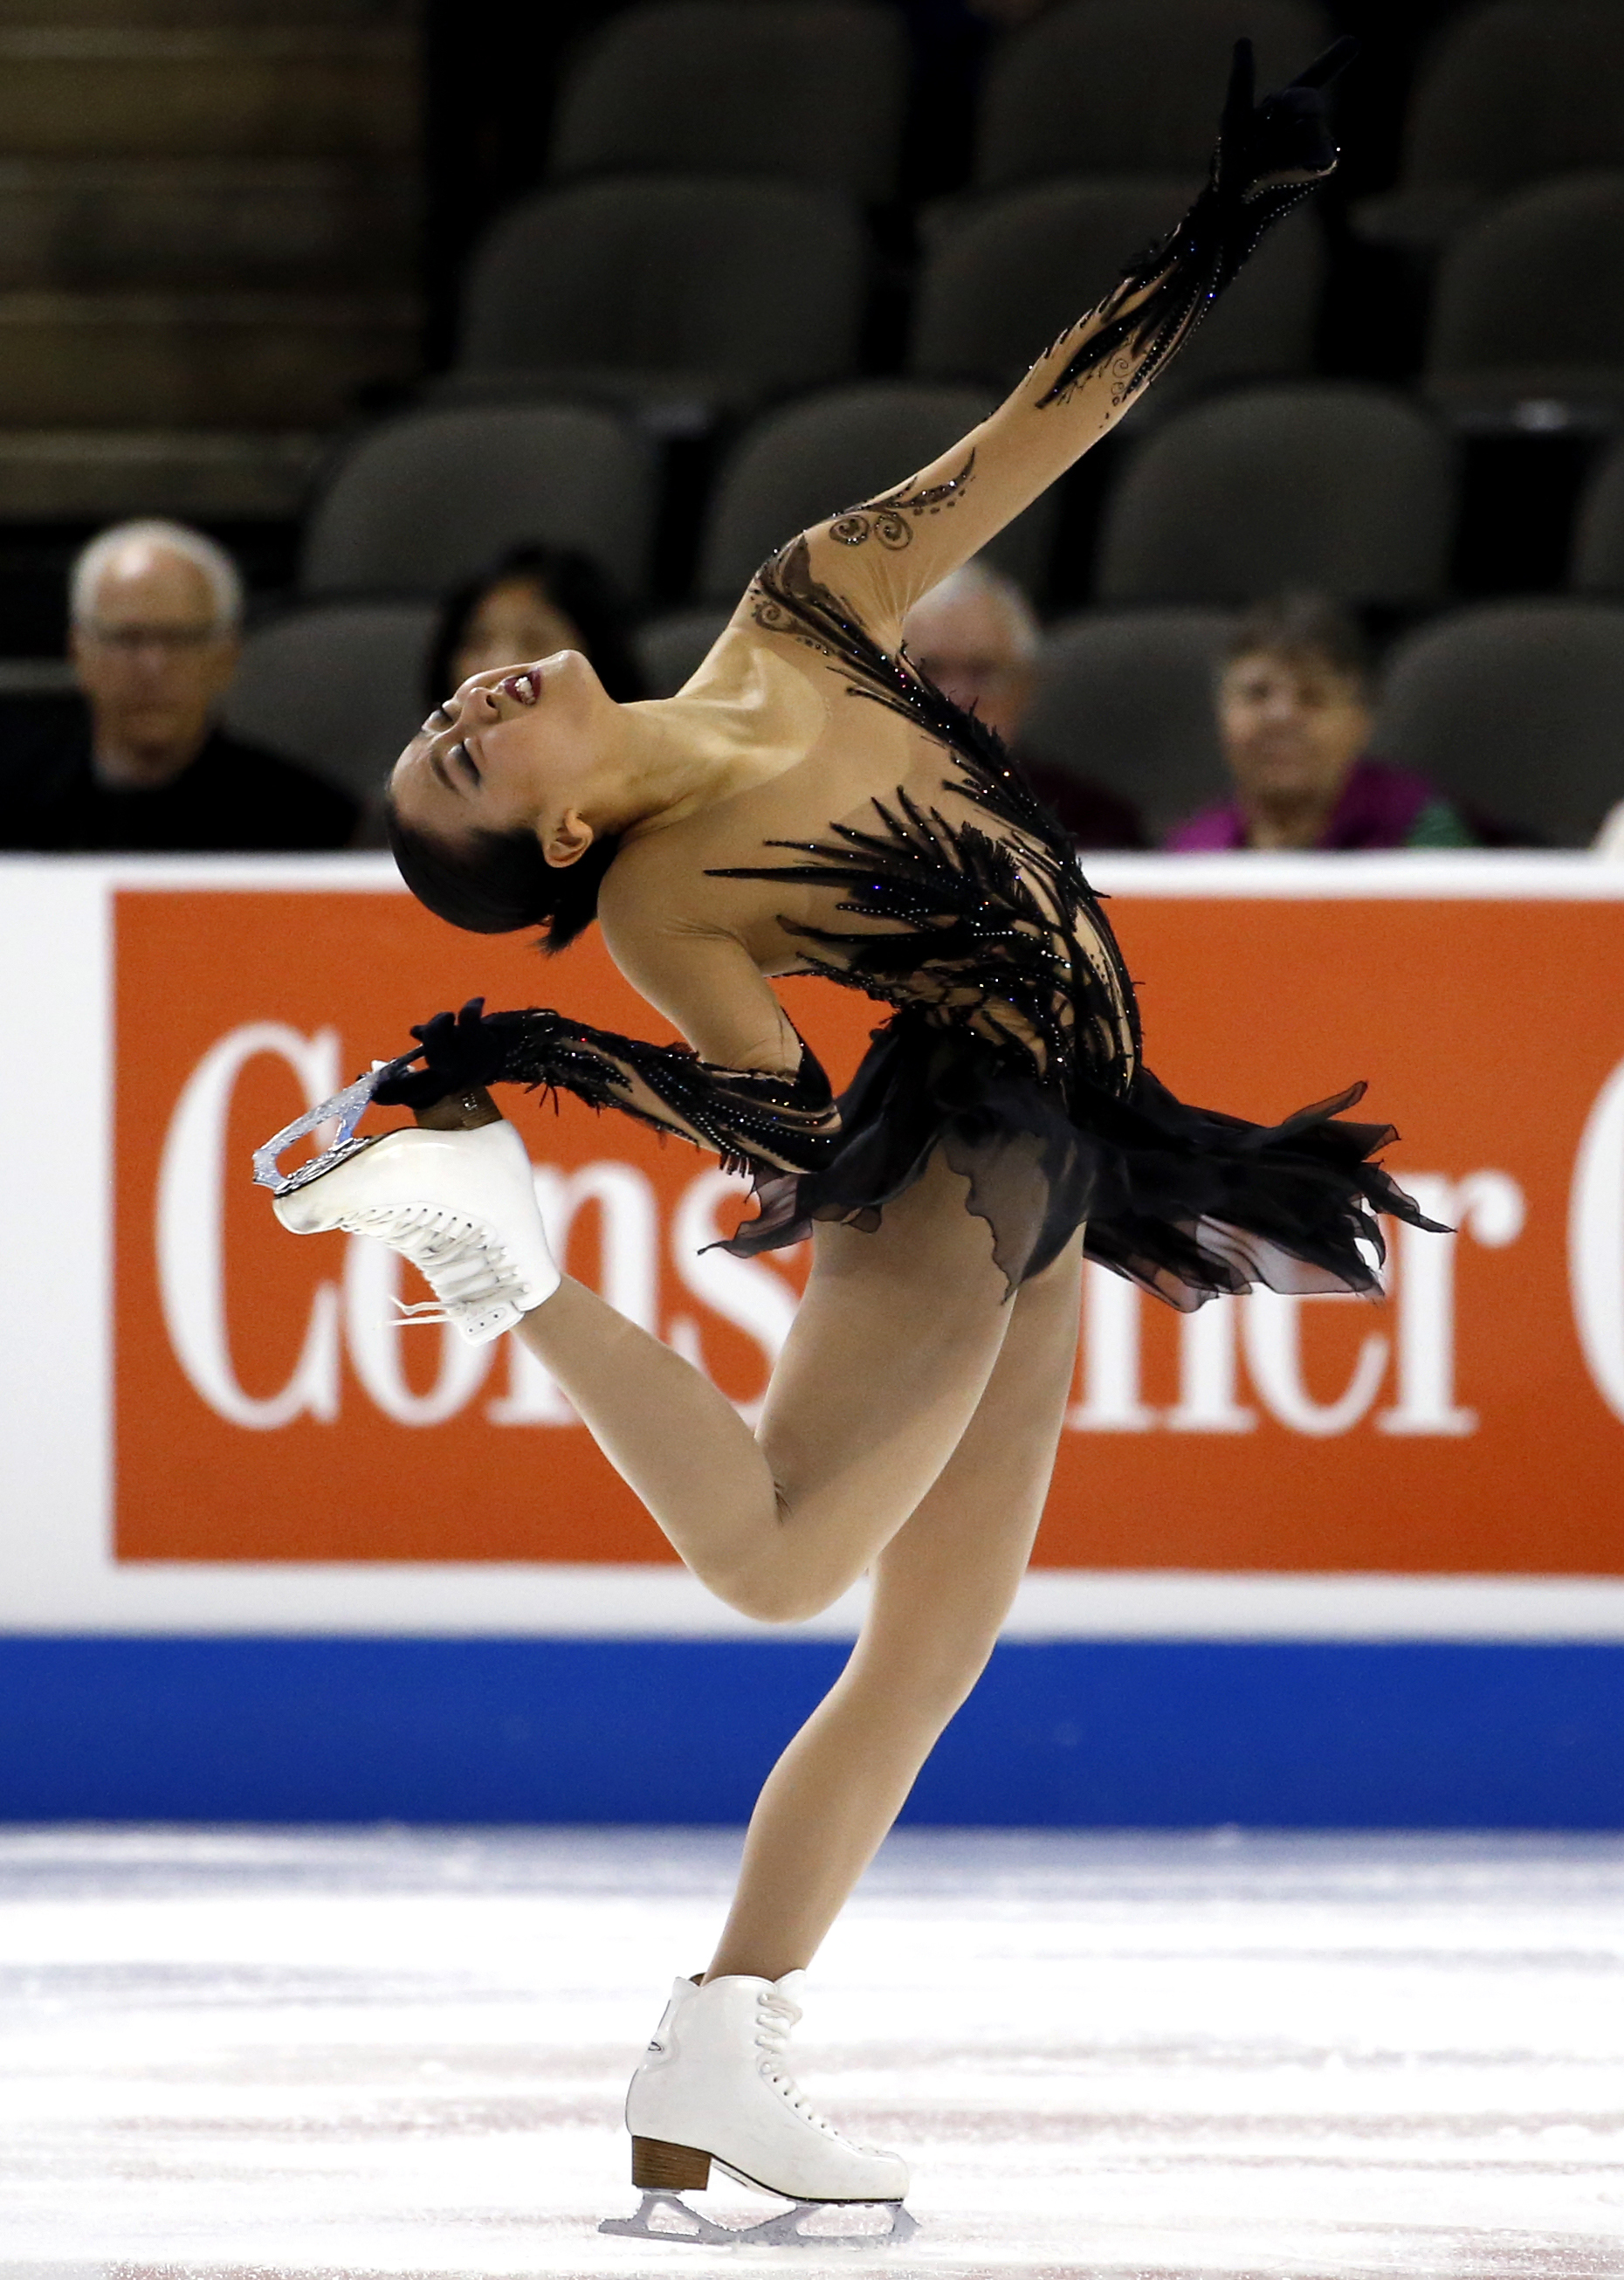 FILE - In this Oct. 21, 2016, file photo, Mao Asada, of Japan, competes in women's short program at the Skate America figure skating event, in Hoffman Estates, Ill. Mao Asada says she has decided to retire. The 26-year-old Asada, a silver medalist at the